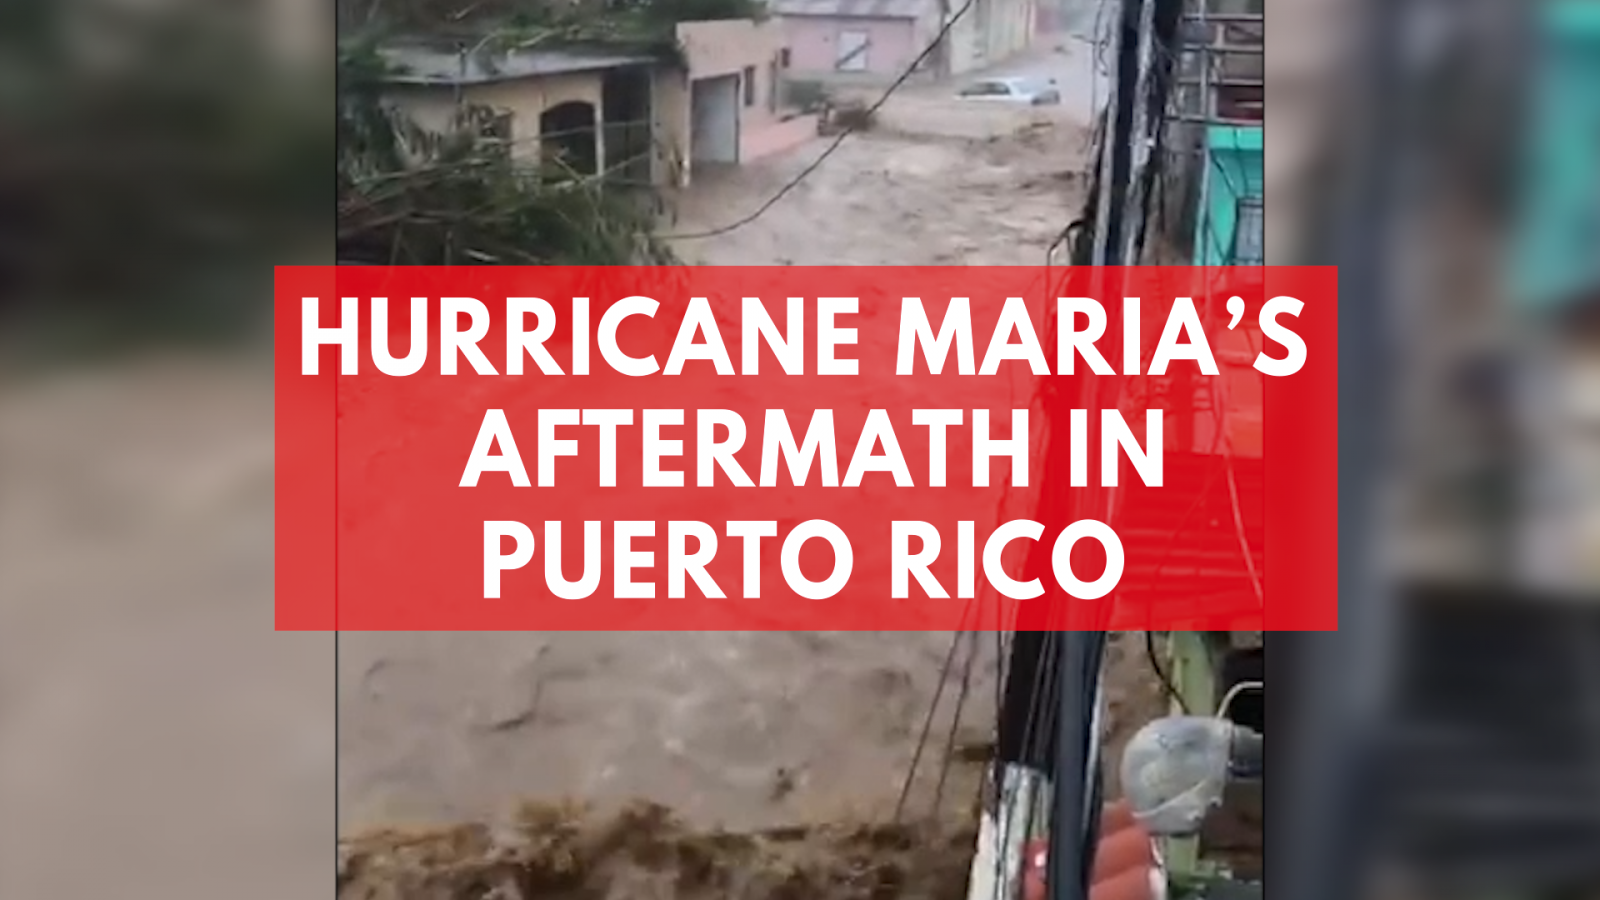 hurricane-marias-aftermath-in-puerto-rico